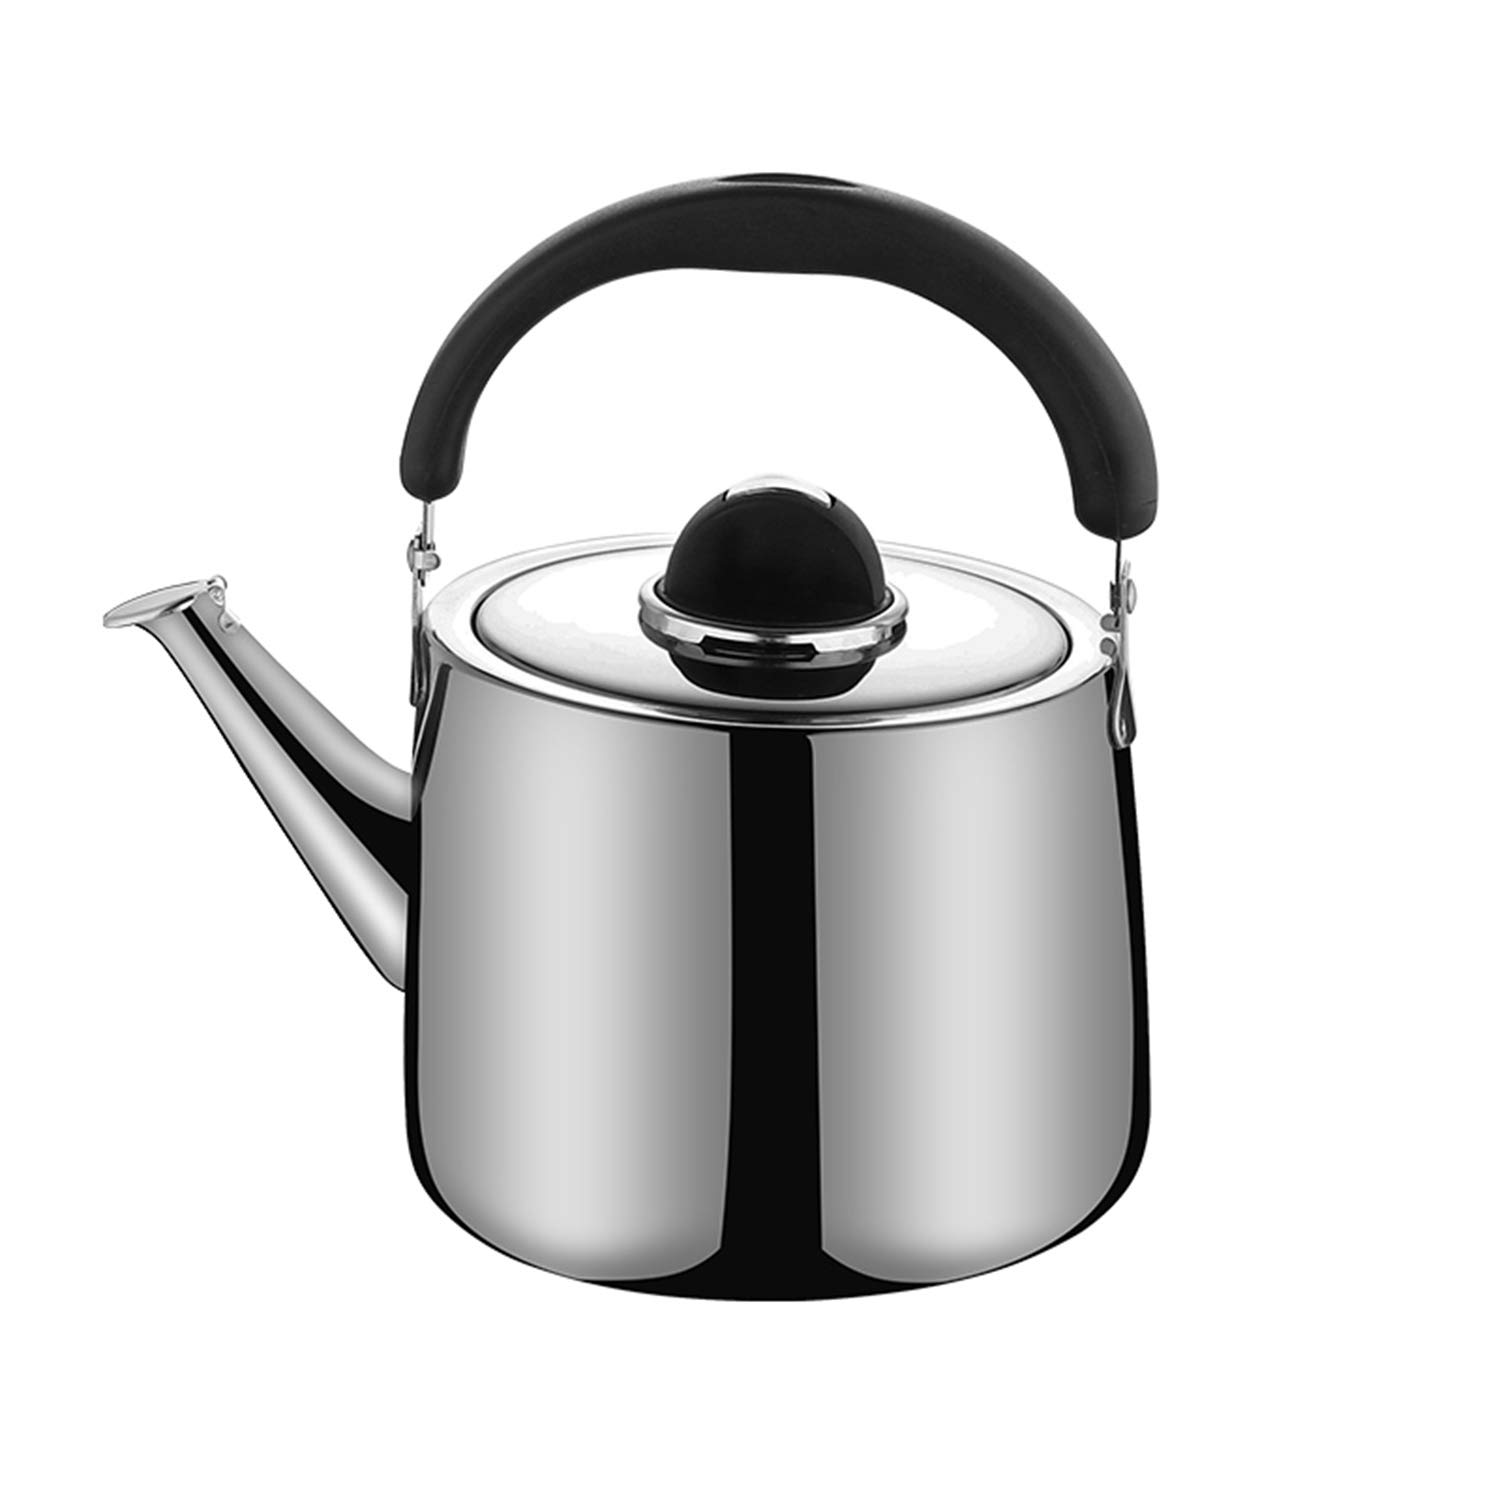 M-MAX Stainless Steel Tea Kettle Stovetop Whistling Teakettle Teapot with Ergonomic Handle -2.5QT/4QT/6QT (2.5 L) by M-MAX